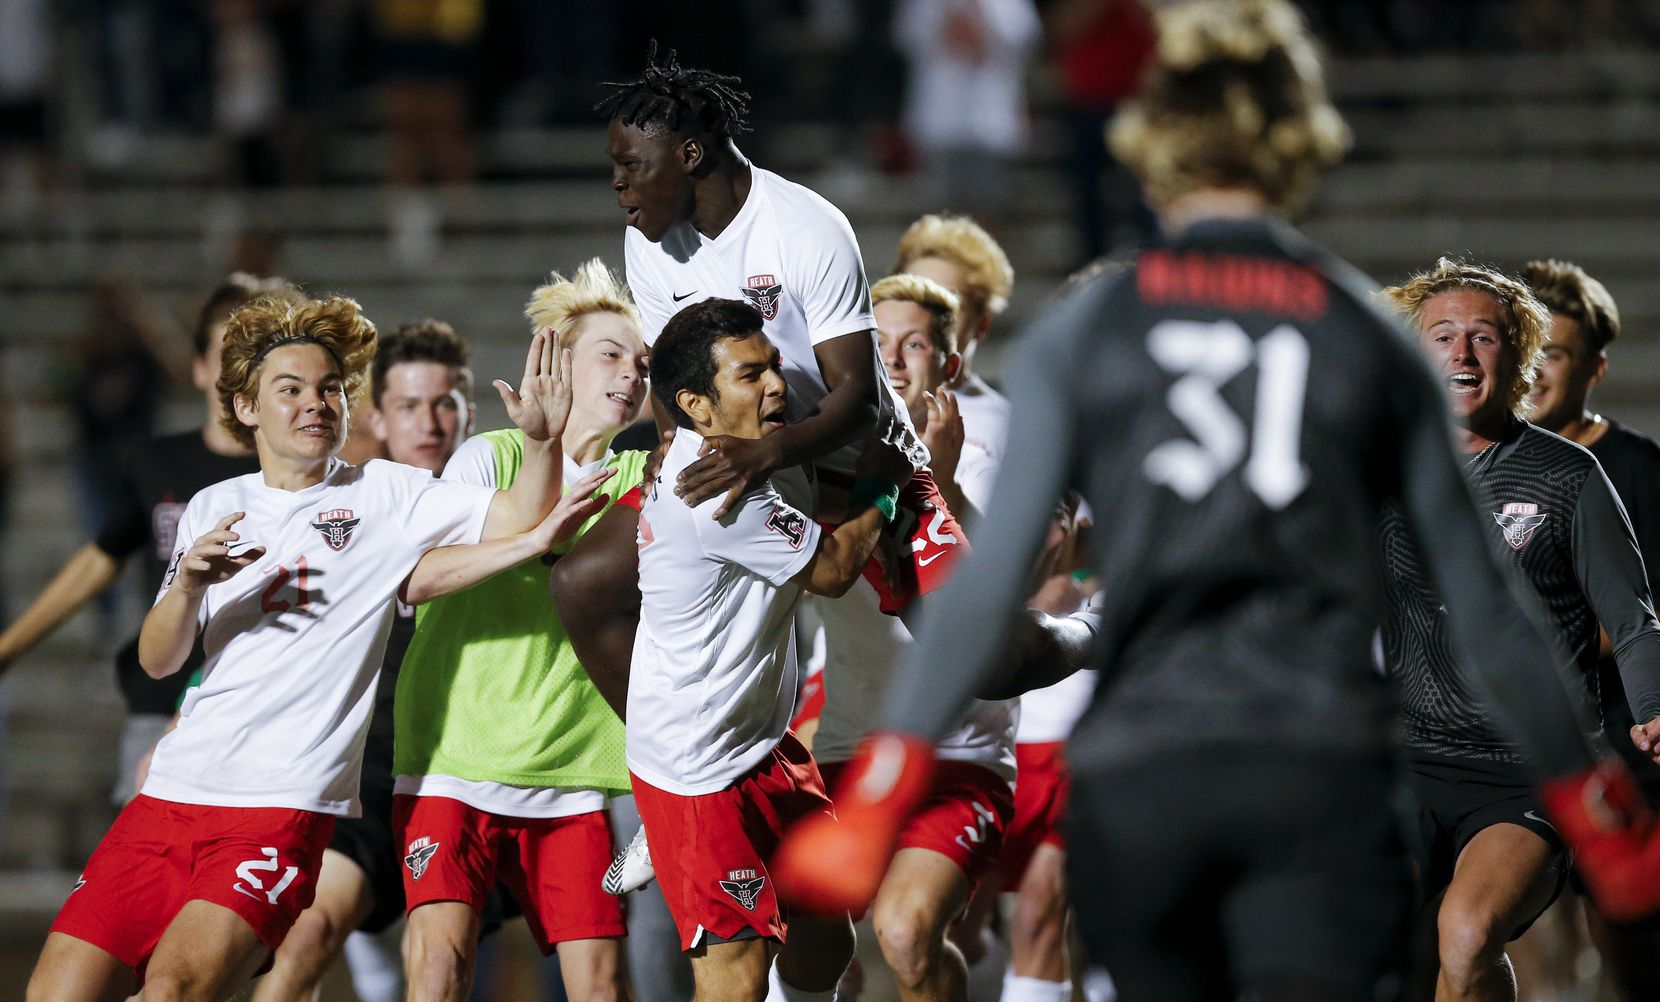 Rockwall-Heath senior defender Oscar Perales, center, is mobbed by teammates after scoring the game winning goal in a shootout after a boys soccer Class 6A state semifinal against Allen at Mesquite Memorial Stadium in Mesquite, Tuesday, April 13, 2021. Rockwall-Heath won 3-1 in a shootout. (Brandon Wade/Special Contributor)